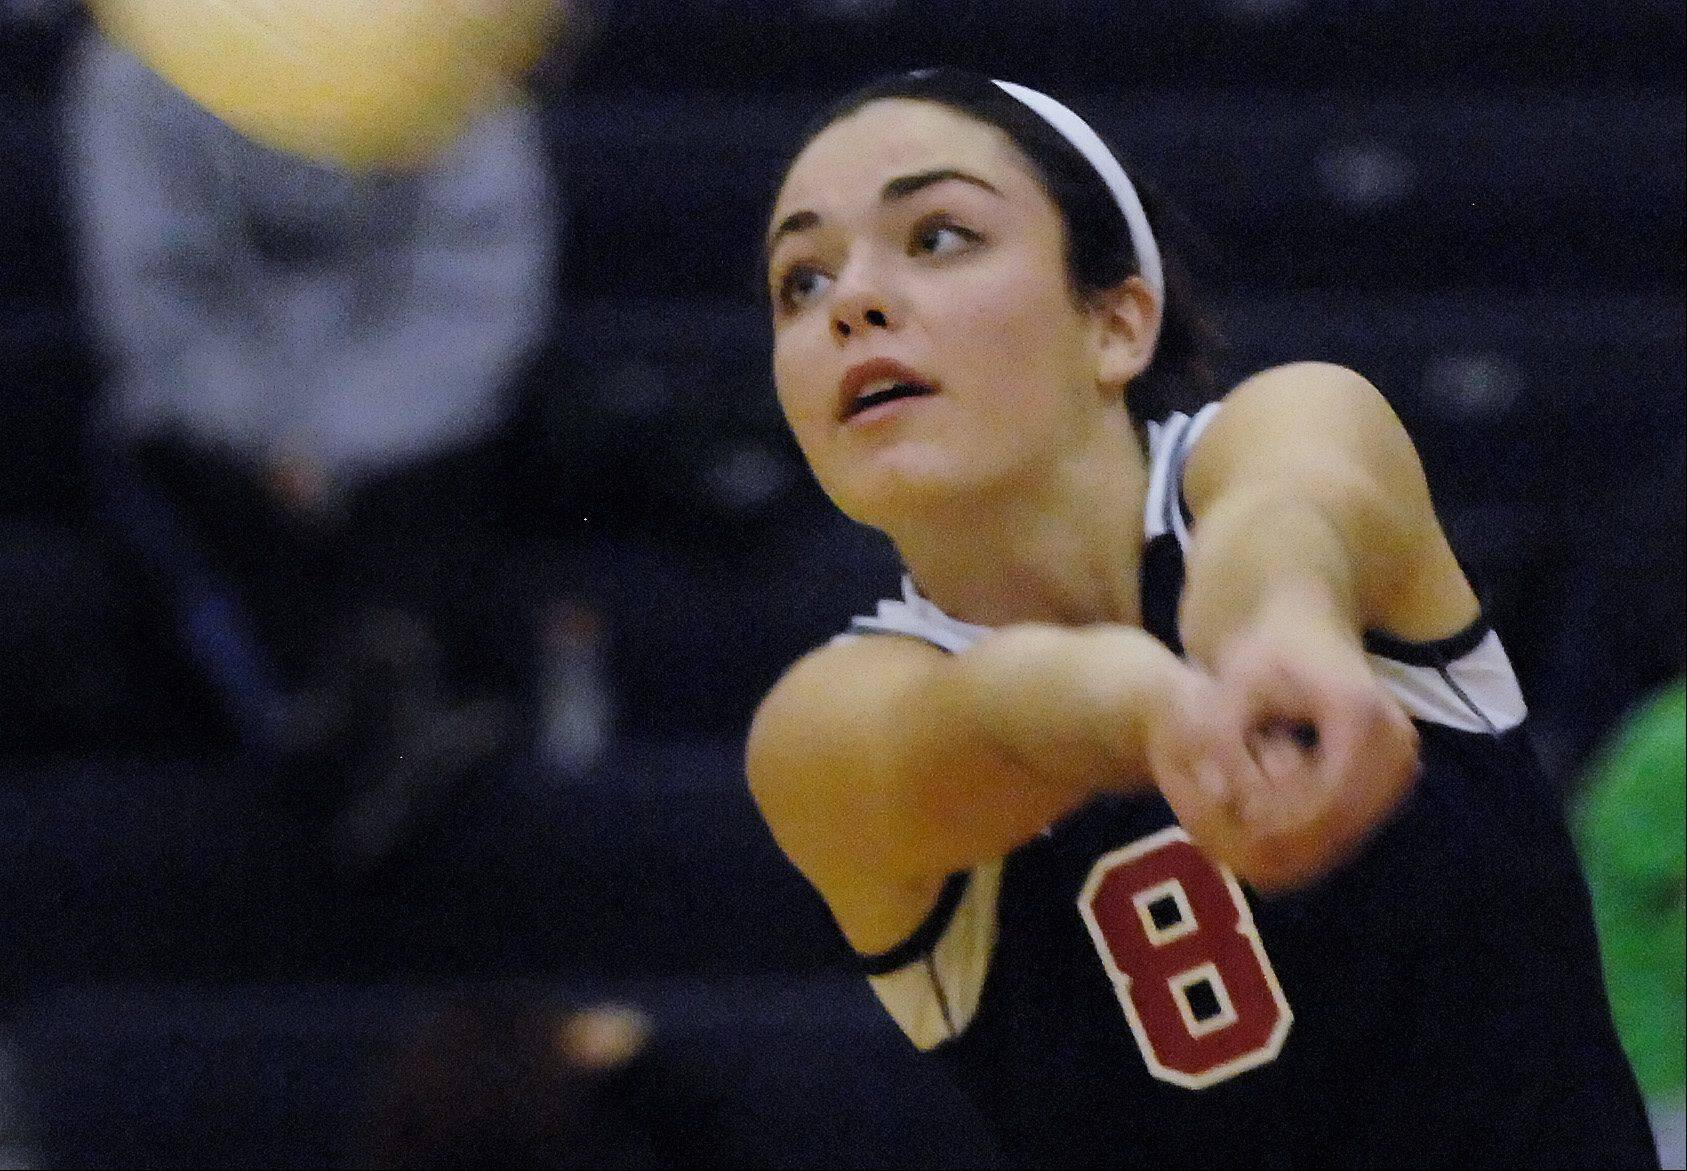 South Elgin's Sam Kummerer hits from midcourt Monday against St. Edward in South Elgin.